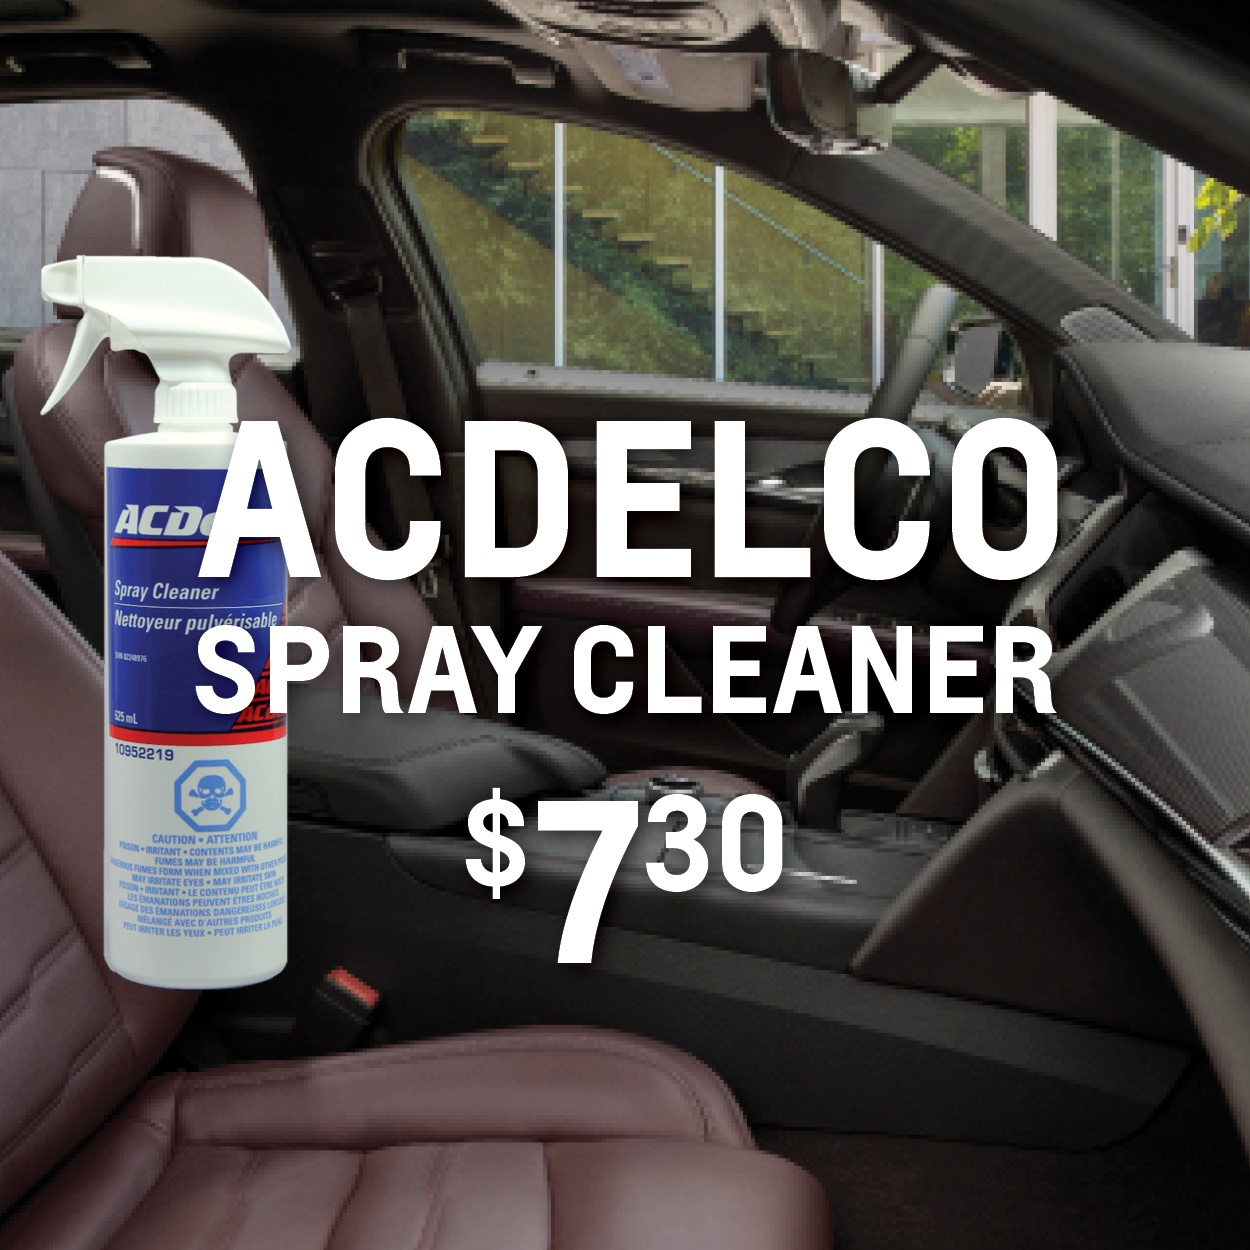 ACDelco Spray Cleaner